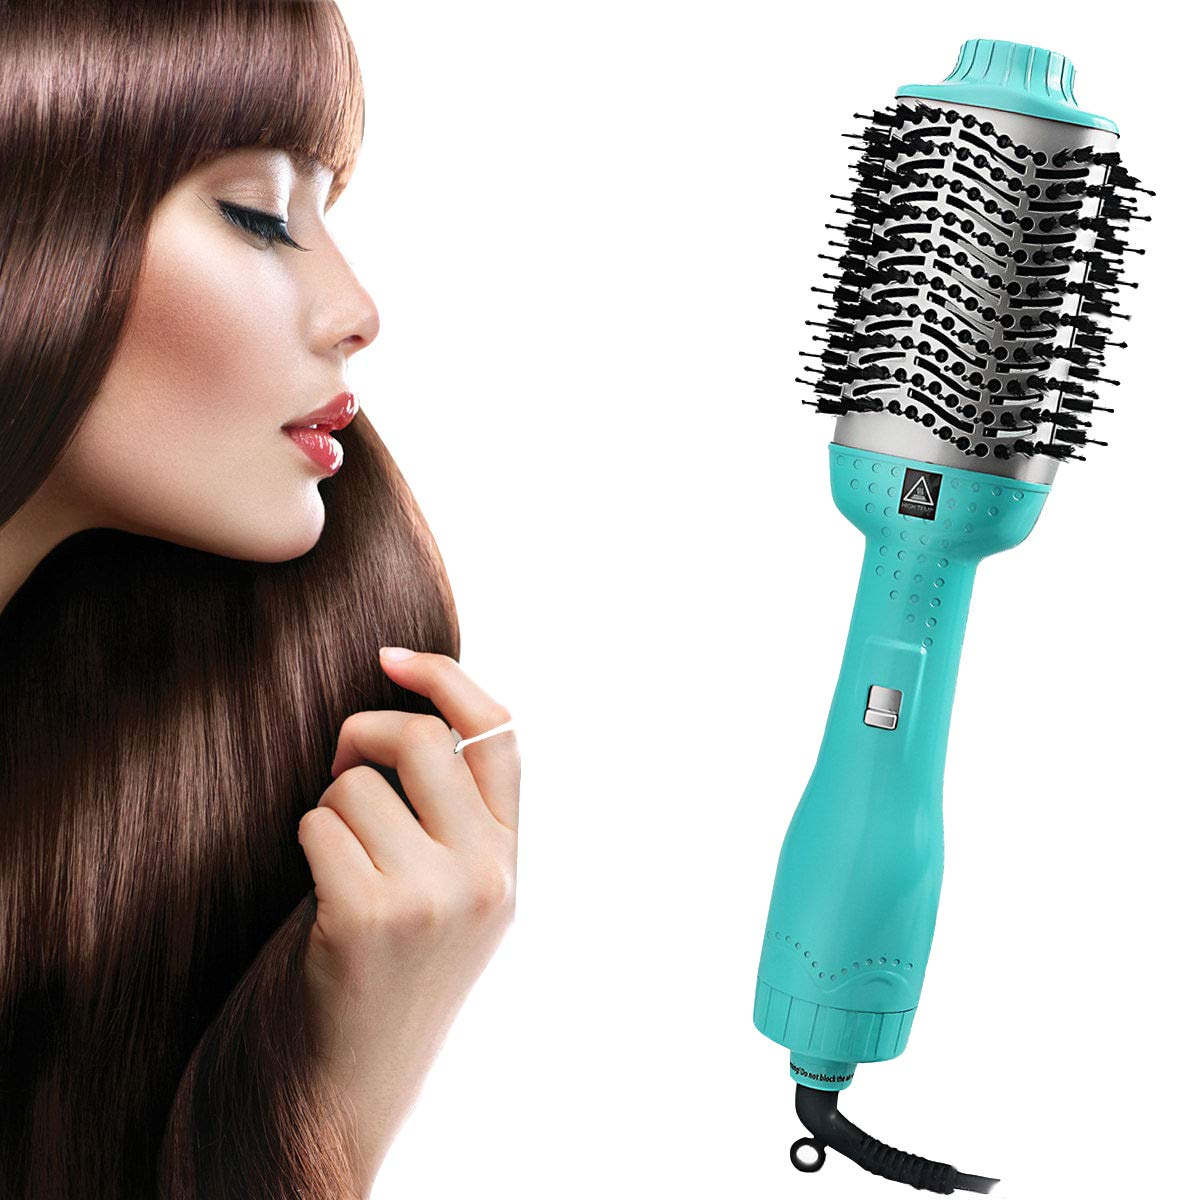 SanMoz One Step Hair Dryer Styler Volumizer – Ceramic Coating Heated 4 in 1 Faster Blowout Hot Air Brush with a Velvet Storage Bag, Macaron Blue